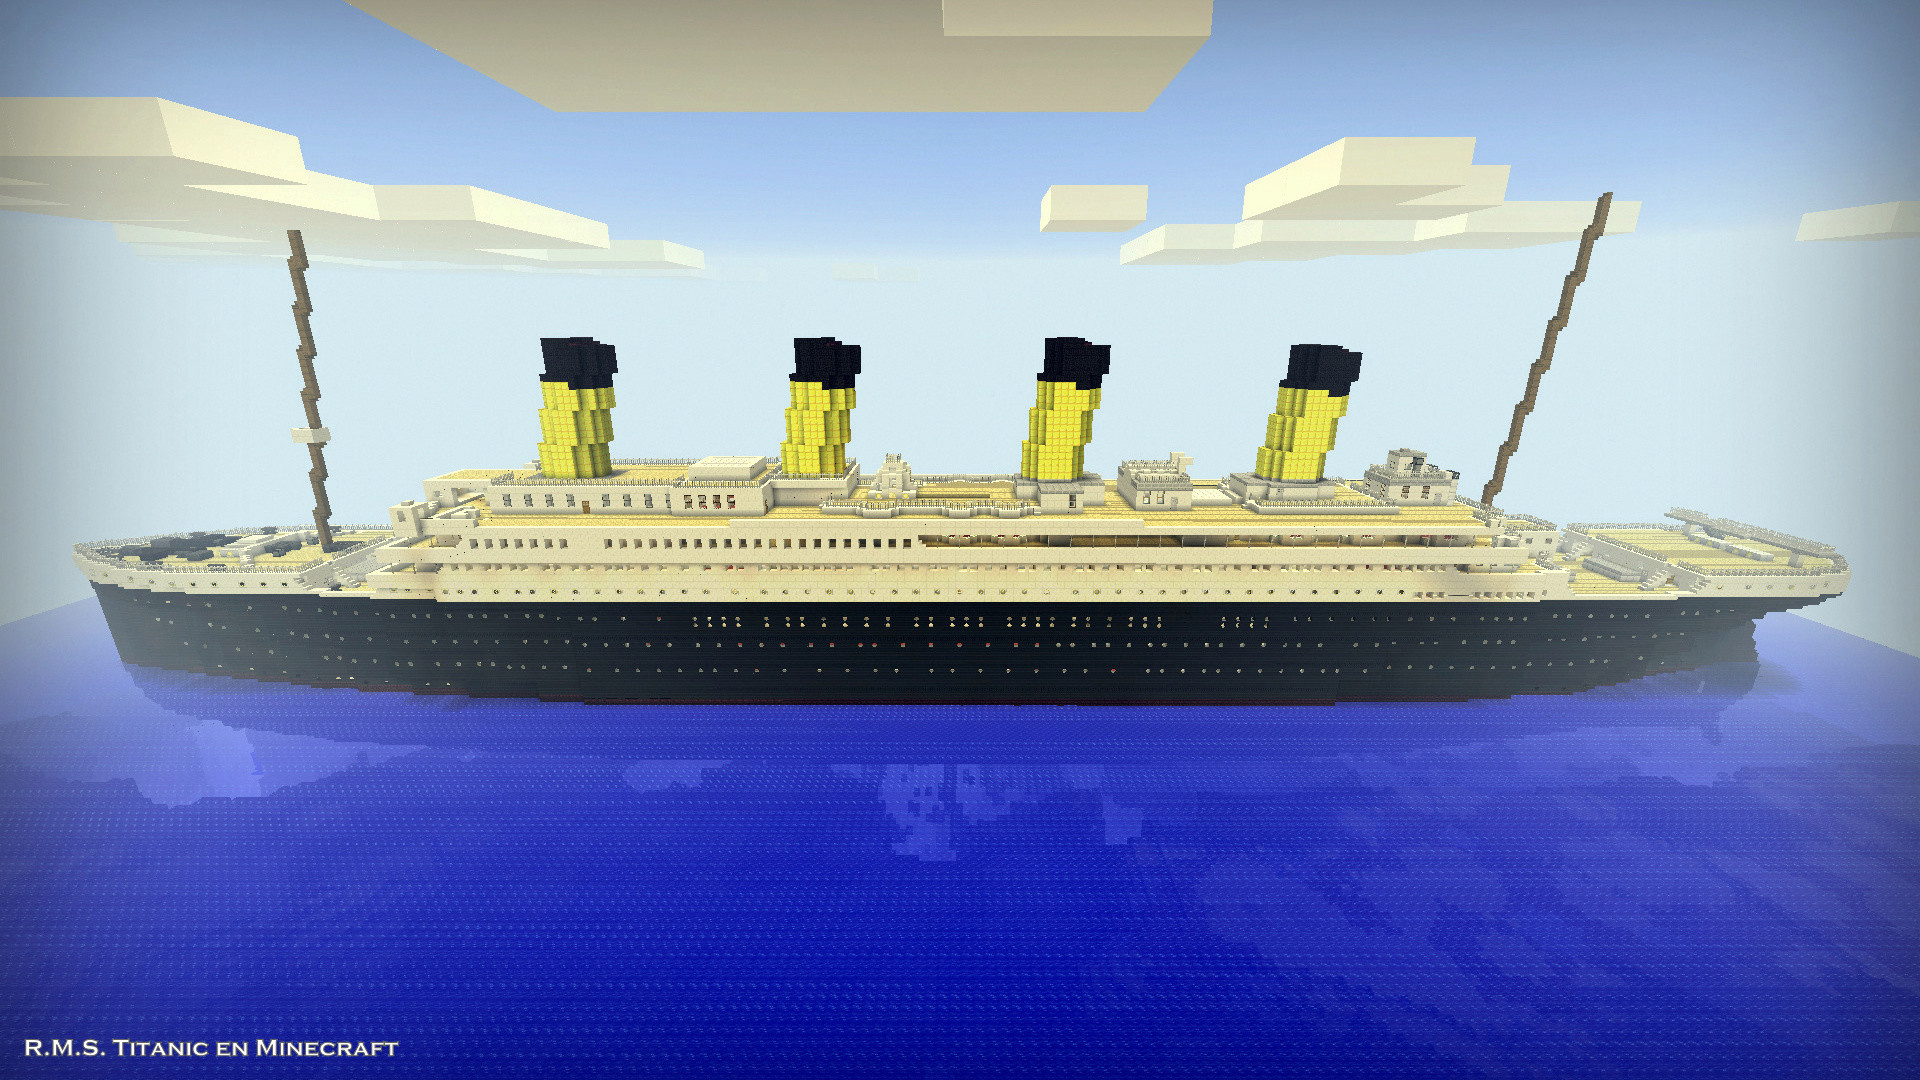 1920x1080 R.M.S. Titanic in Minecraft: The Grand Staircase - The Dome (01/29/2015) -  Maps - Mapping and Modding: Java Edition - Minecraft Forum - Minecraft Forum